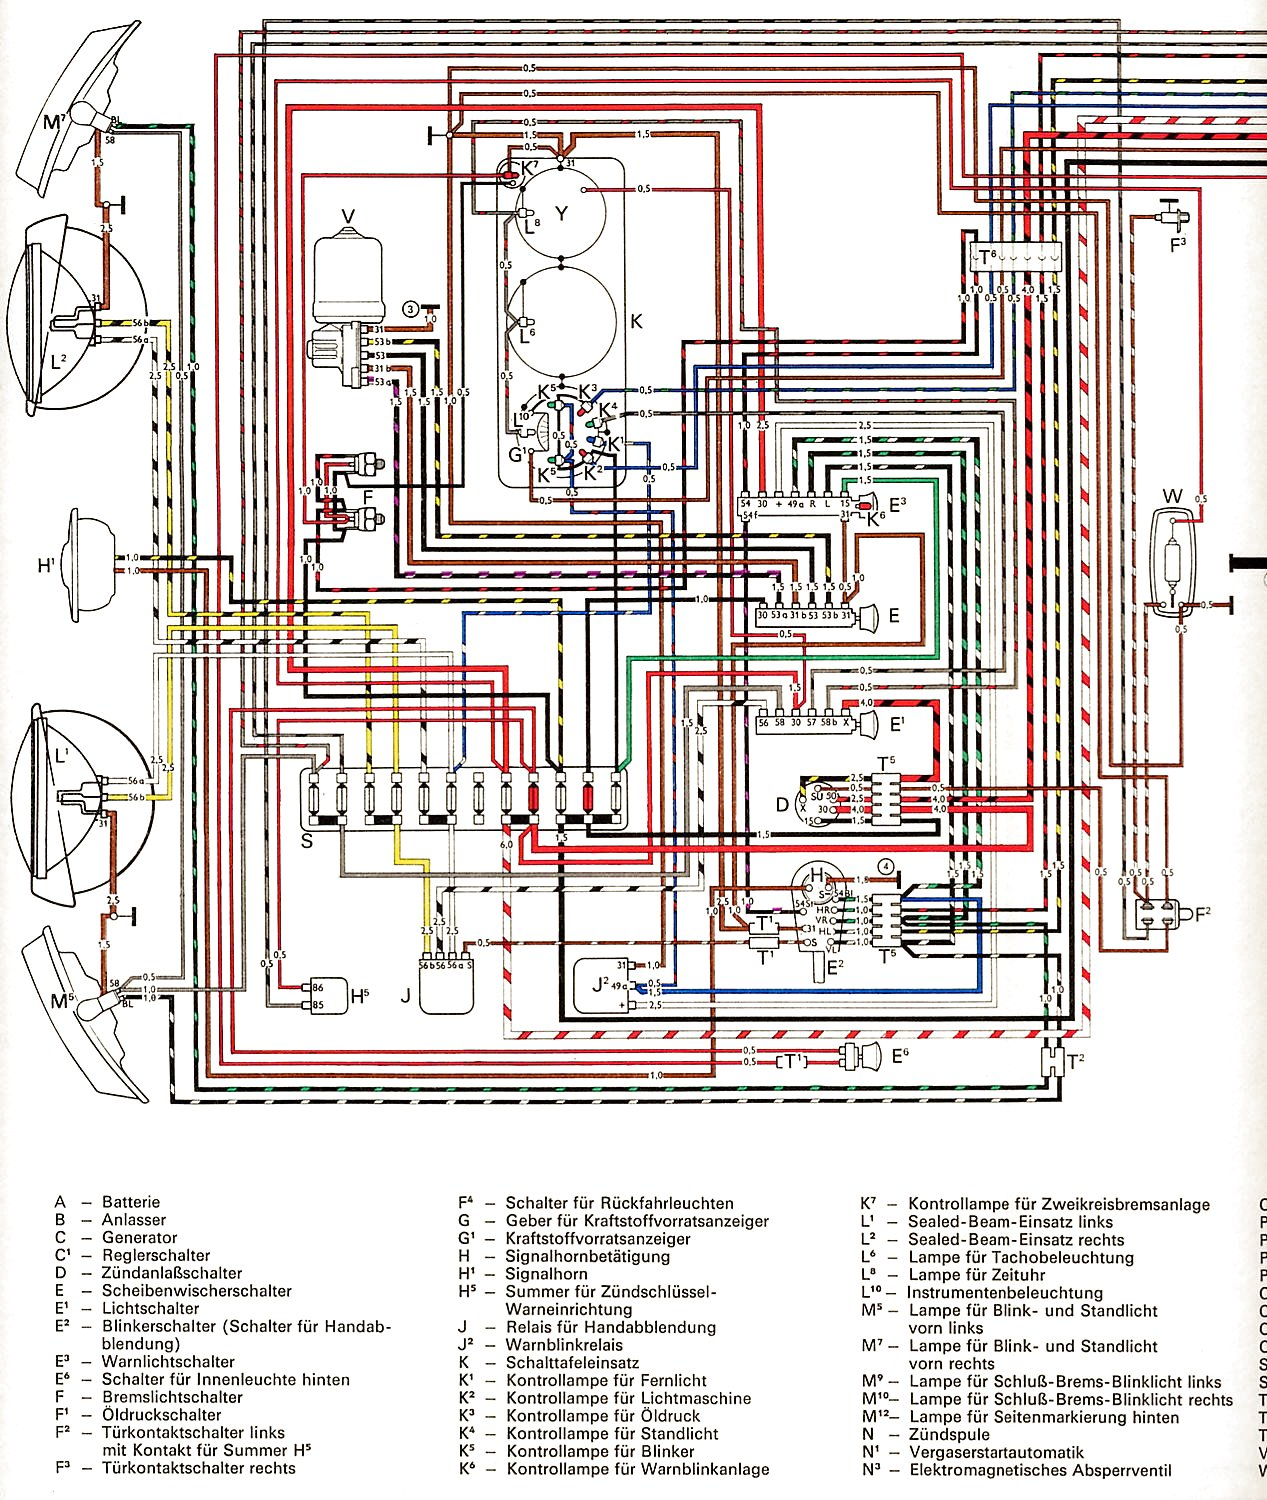 1970 beetle wiring diagram porsche 996 turbo 71 vw radio get free image